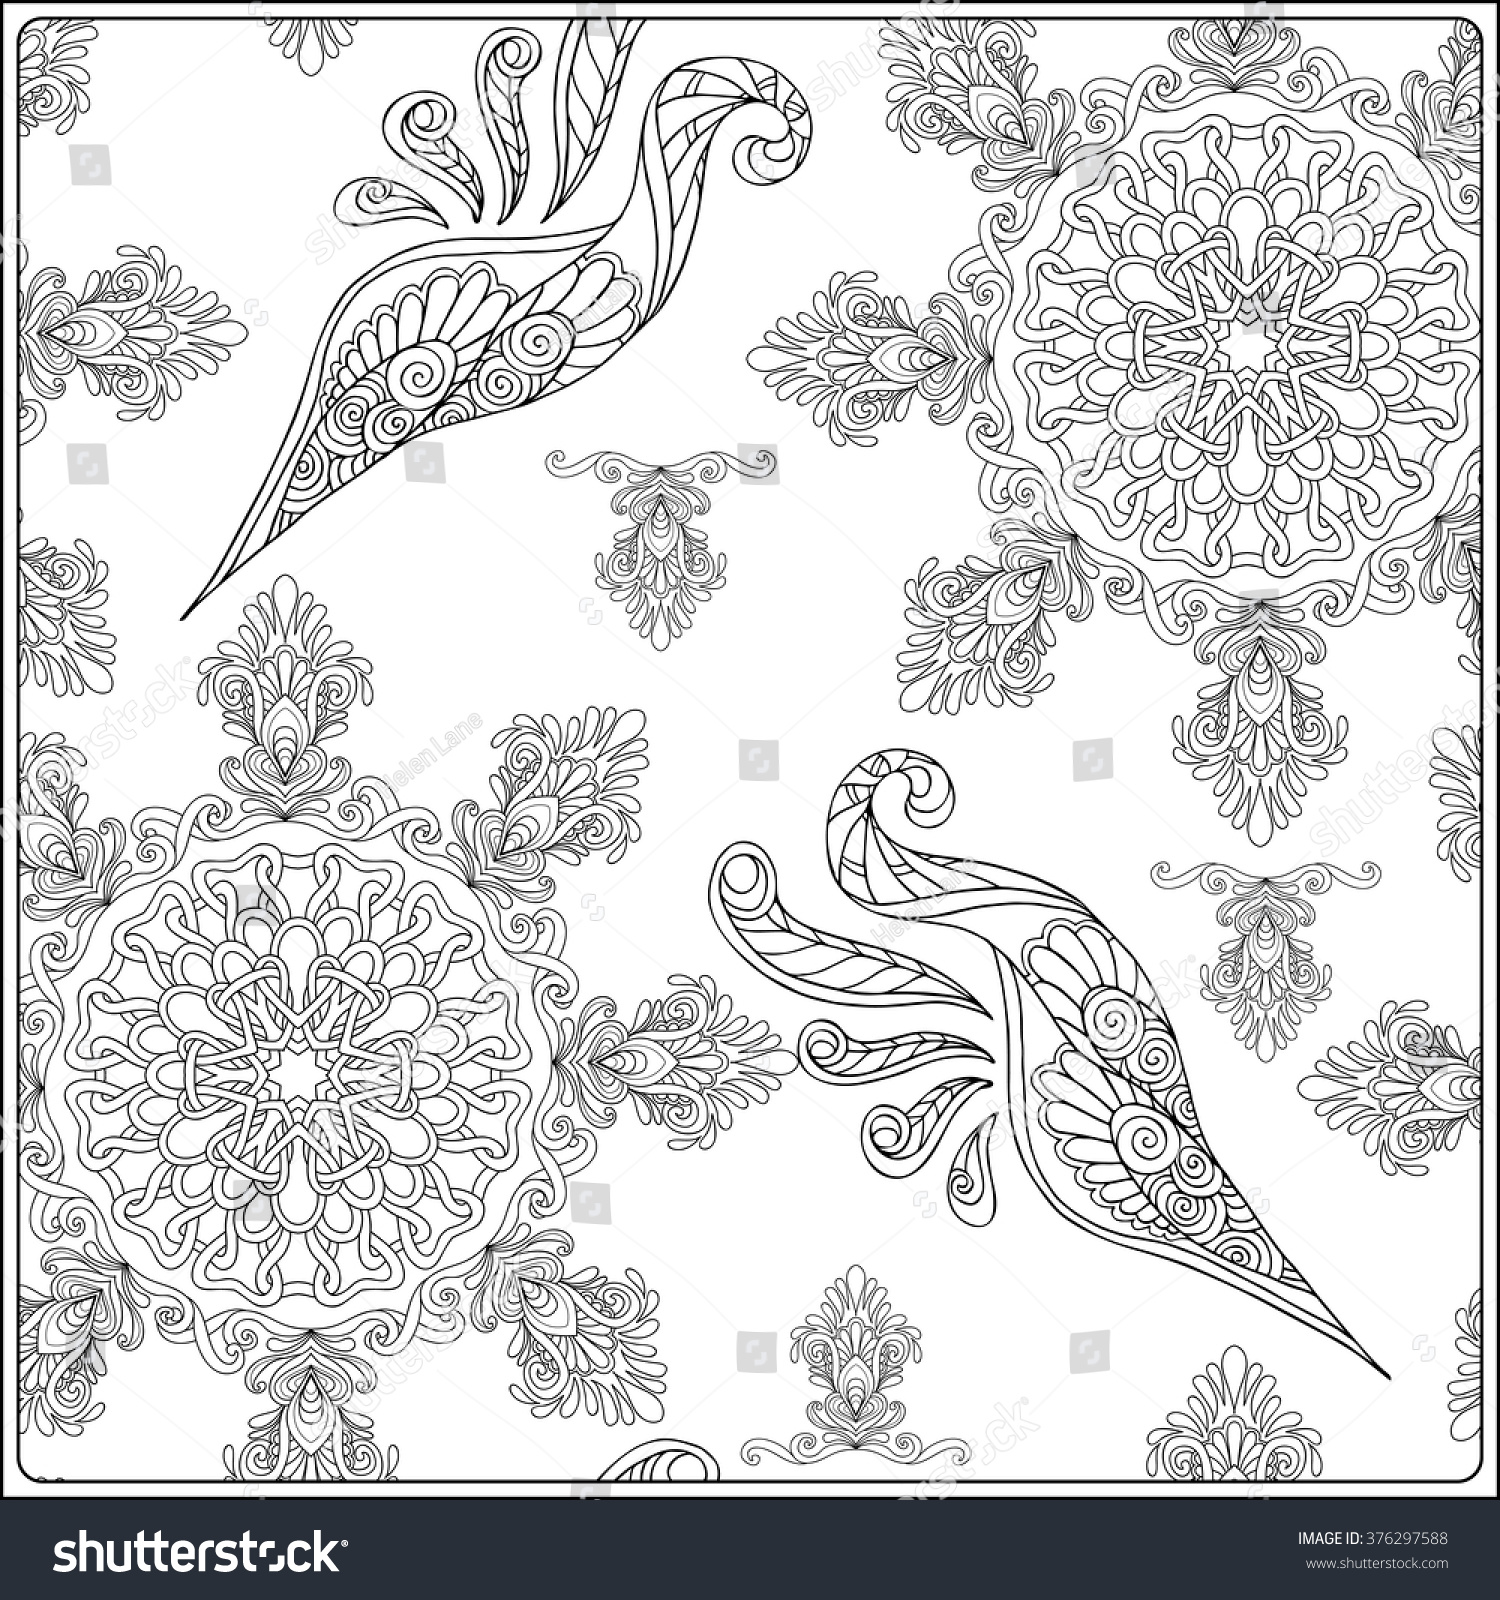 Coloring pages for relaxation - Paisley And Mandala Pattern In Frame Square Coloring Page Relaxation Coloring Book For Adult